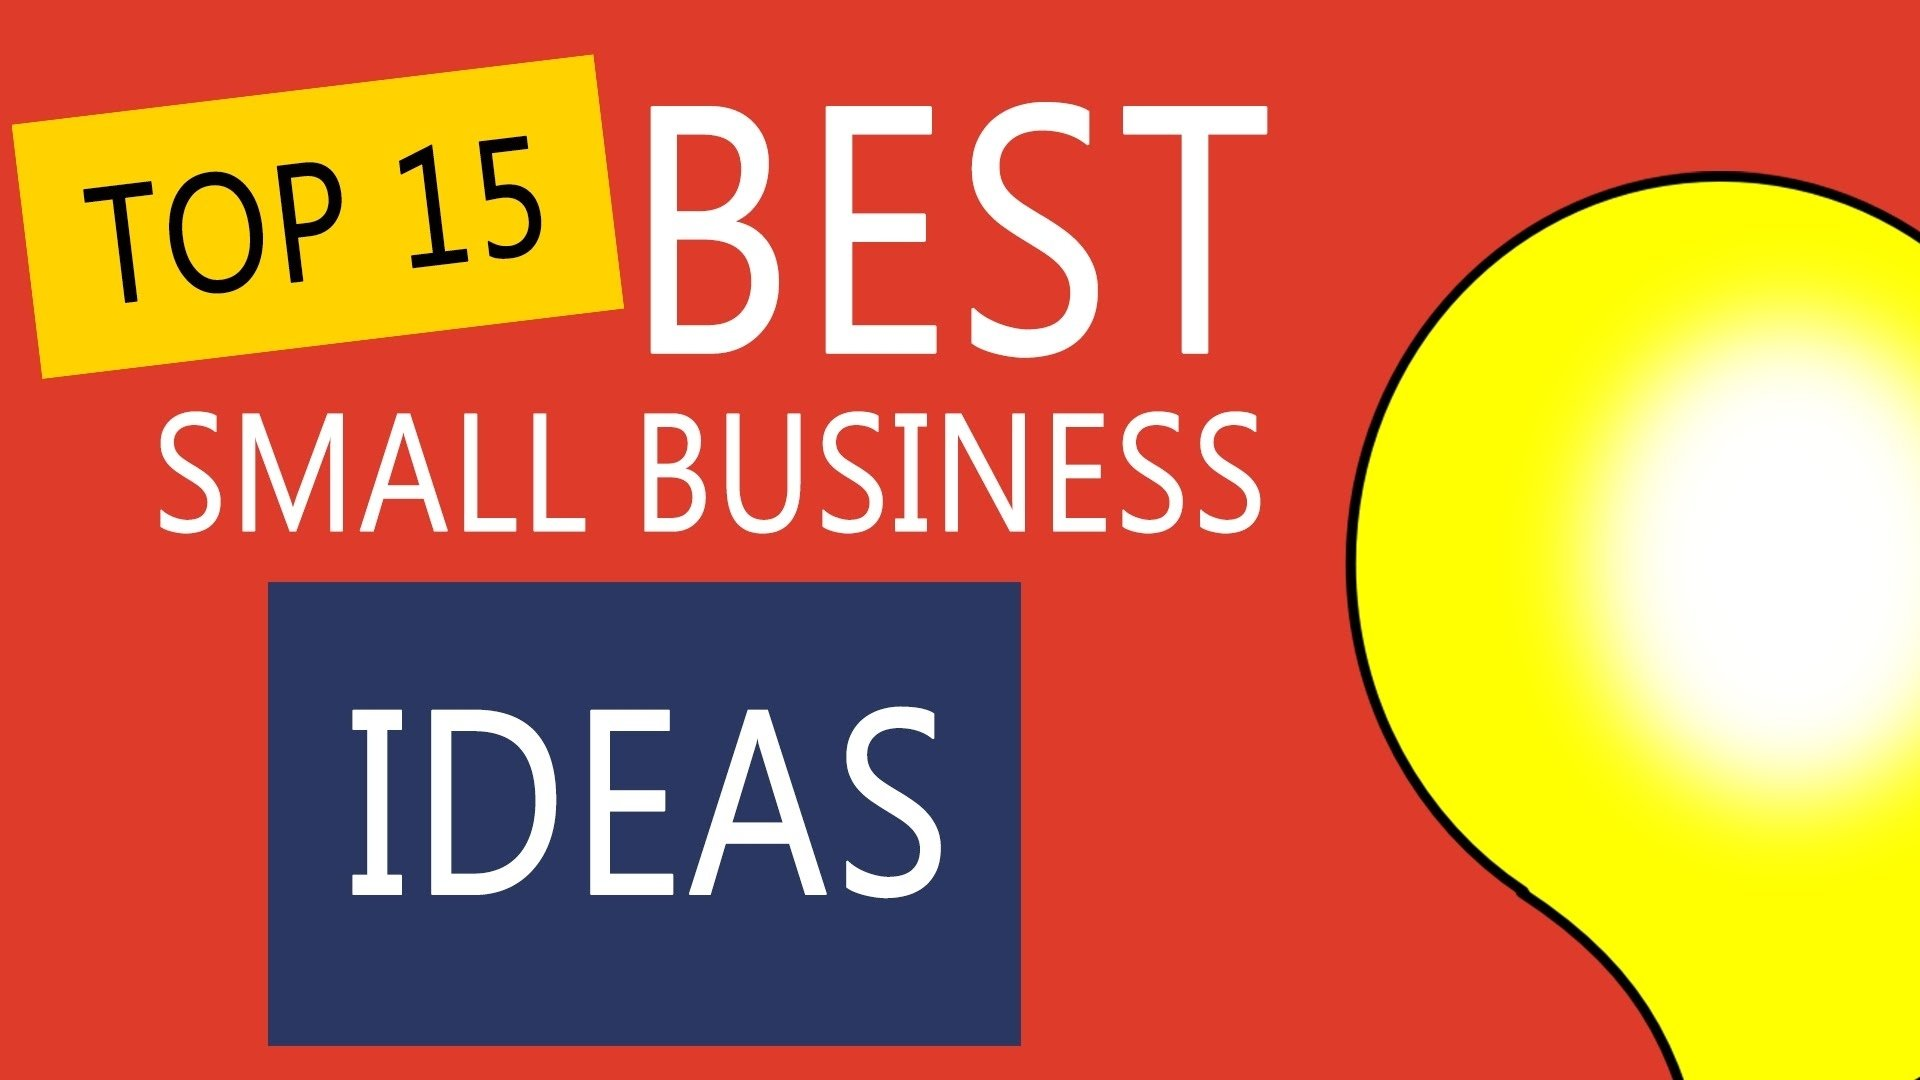 10 Fabulous Ideas For Starting Your Own Business top 15 best small business ideas to start your own business youtube 10 2020